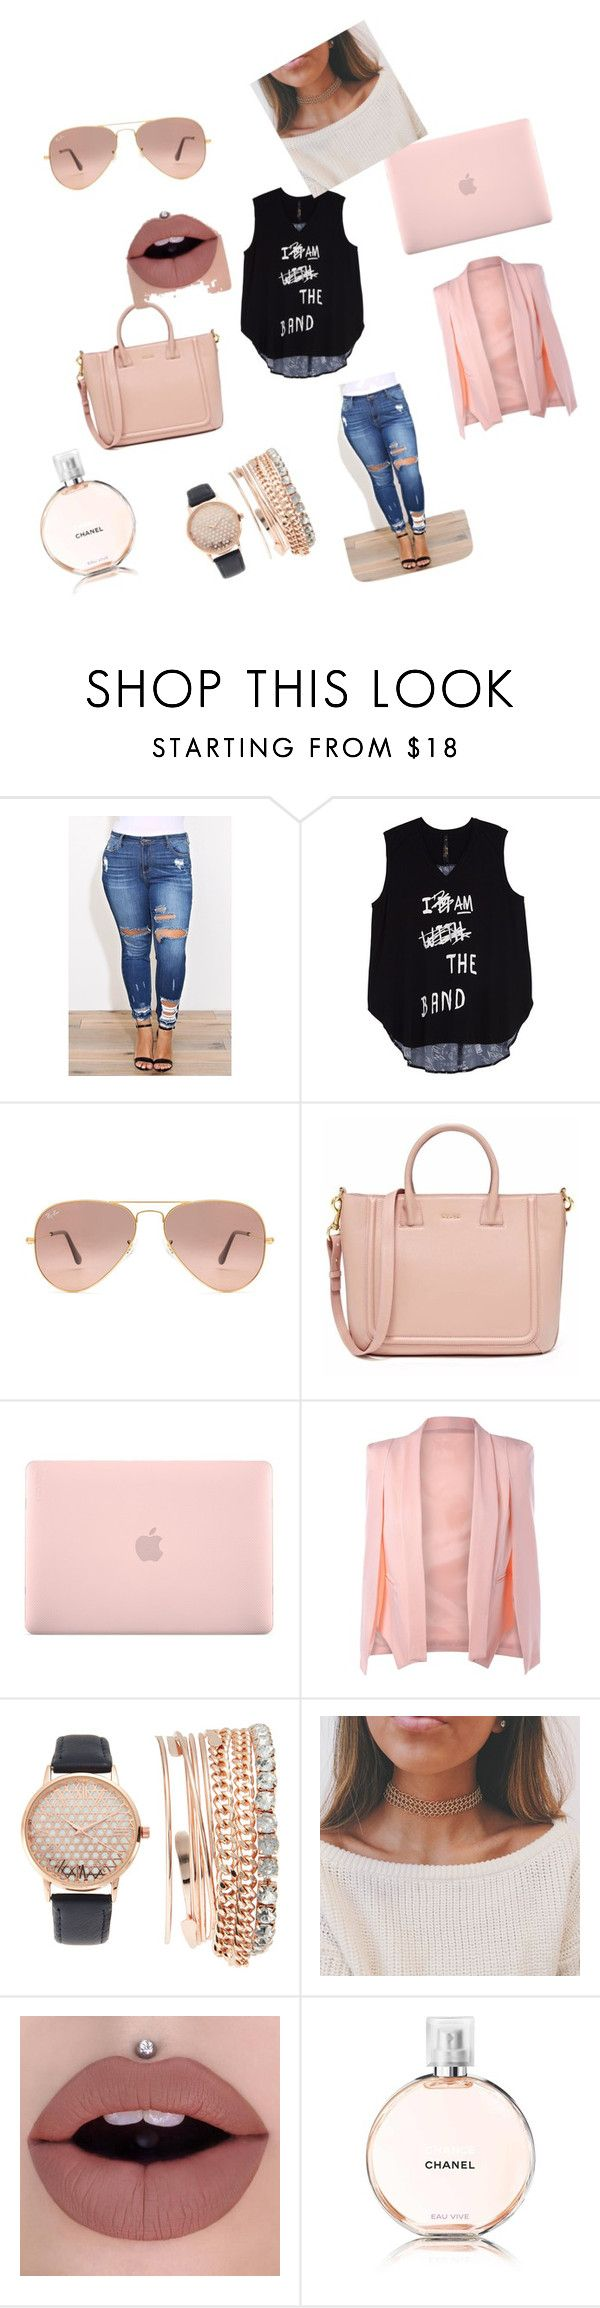 """My Fav"" by mrsally ❤ liked on Polyvore featuring Melissa McCarthy Seven7, Ray-Ban, Incase, Jessica Carlyle, Chanel and plus size clothing"